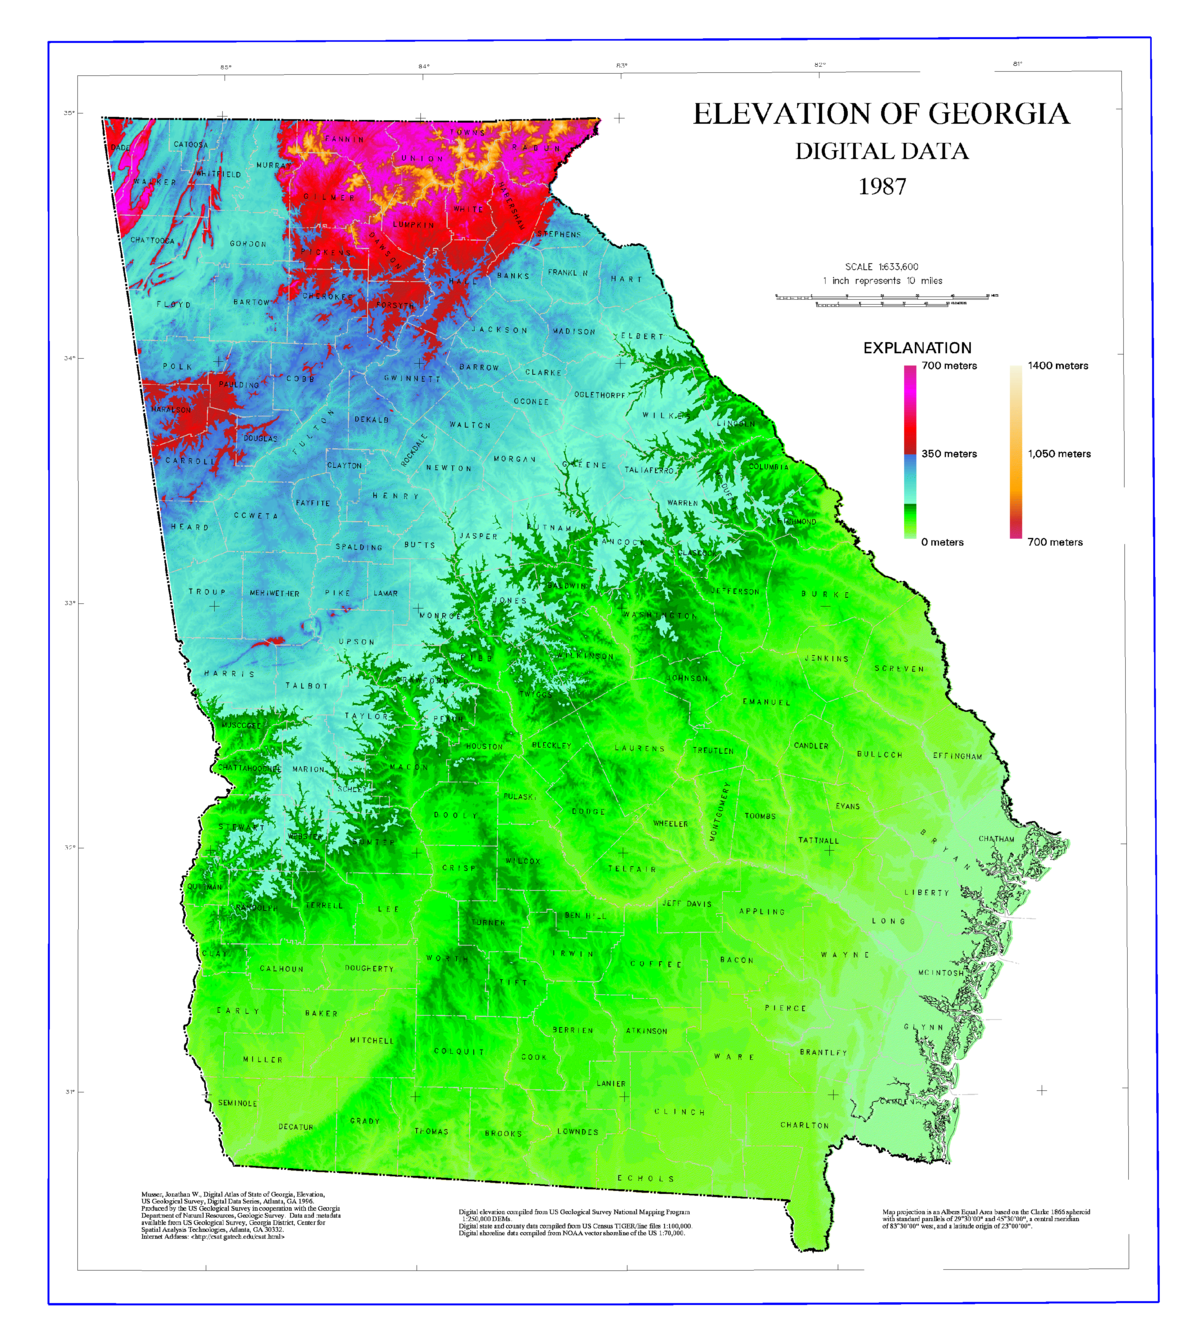 Geography Of Georgia US State Wikipedia - Georgia map lakes